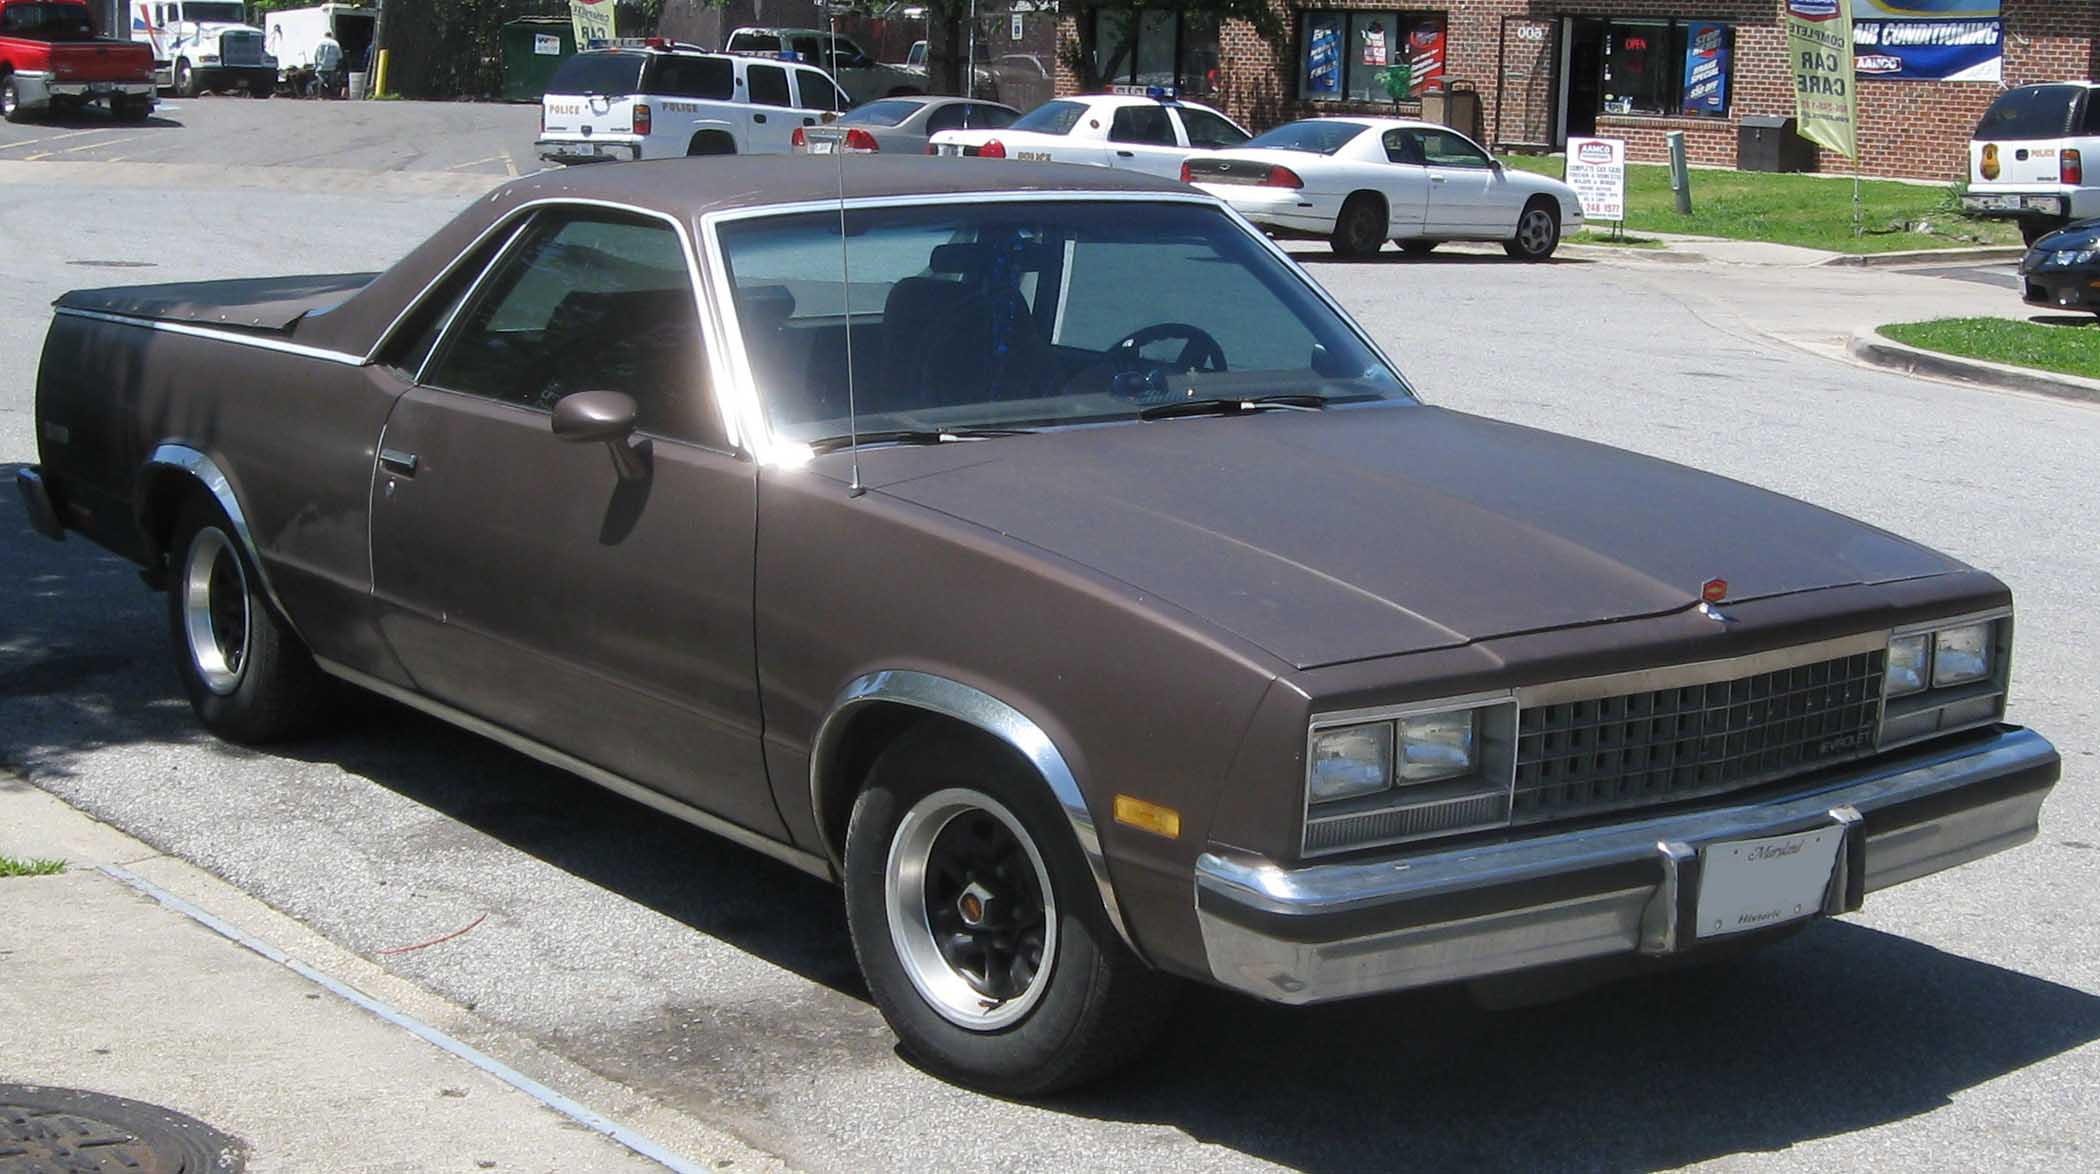 File:Chevrolet El Camino .jpg - Wikimedia Commons